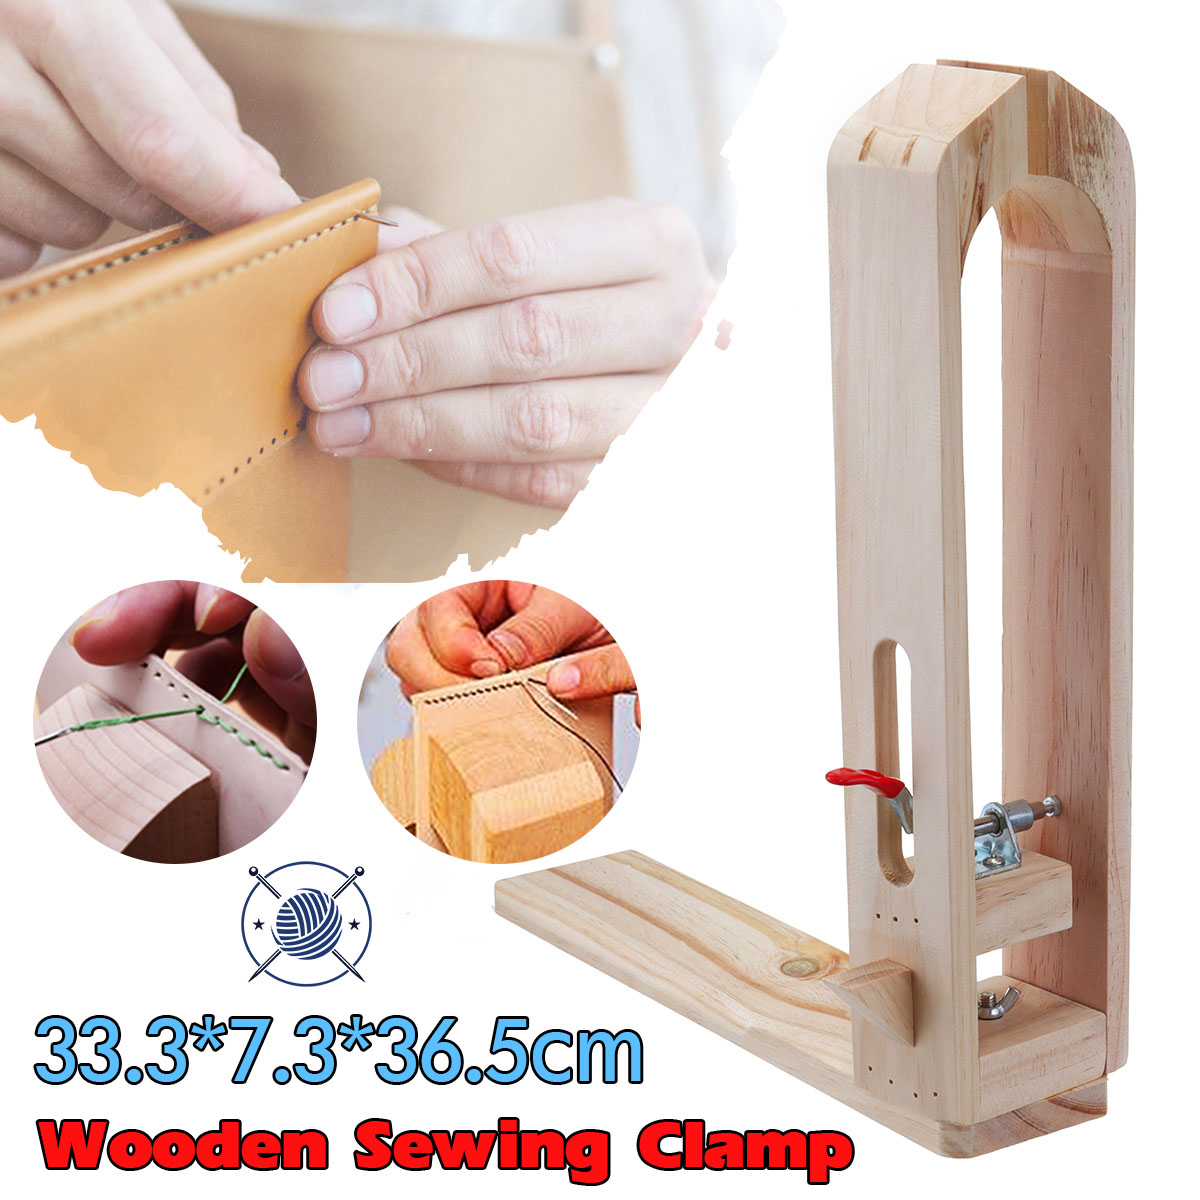 Leather Craft Hand Stitching Sewing Lacing Wooden Clamp Table Desktop Tools